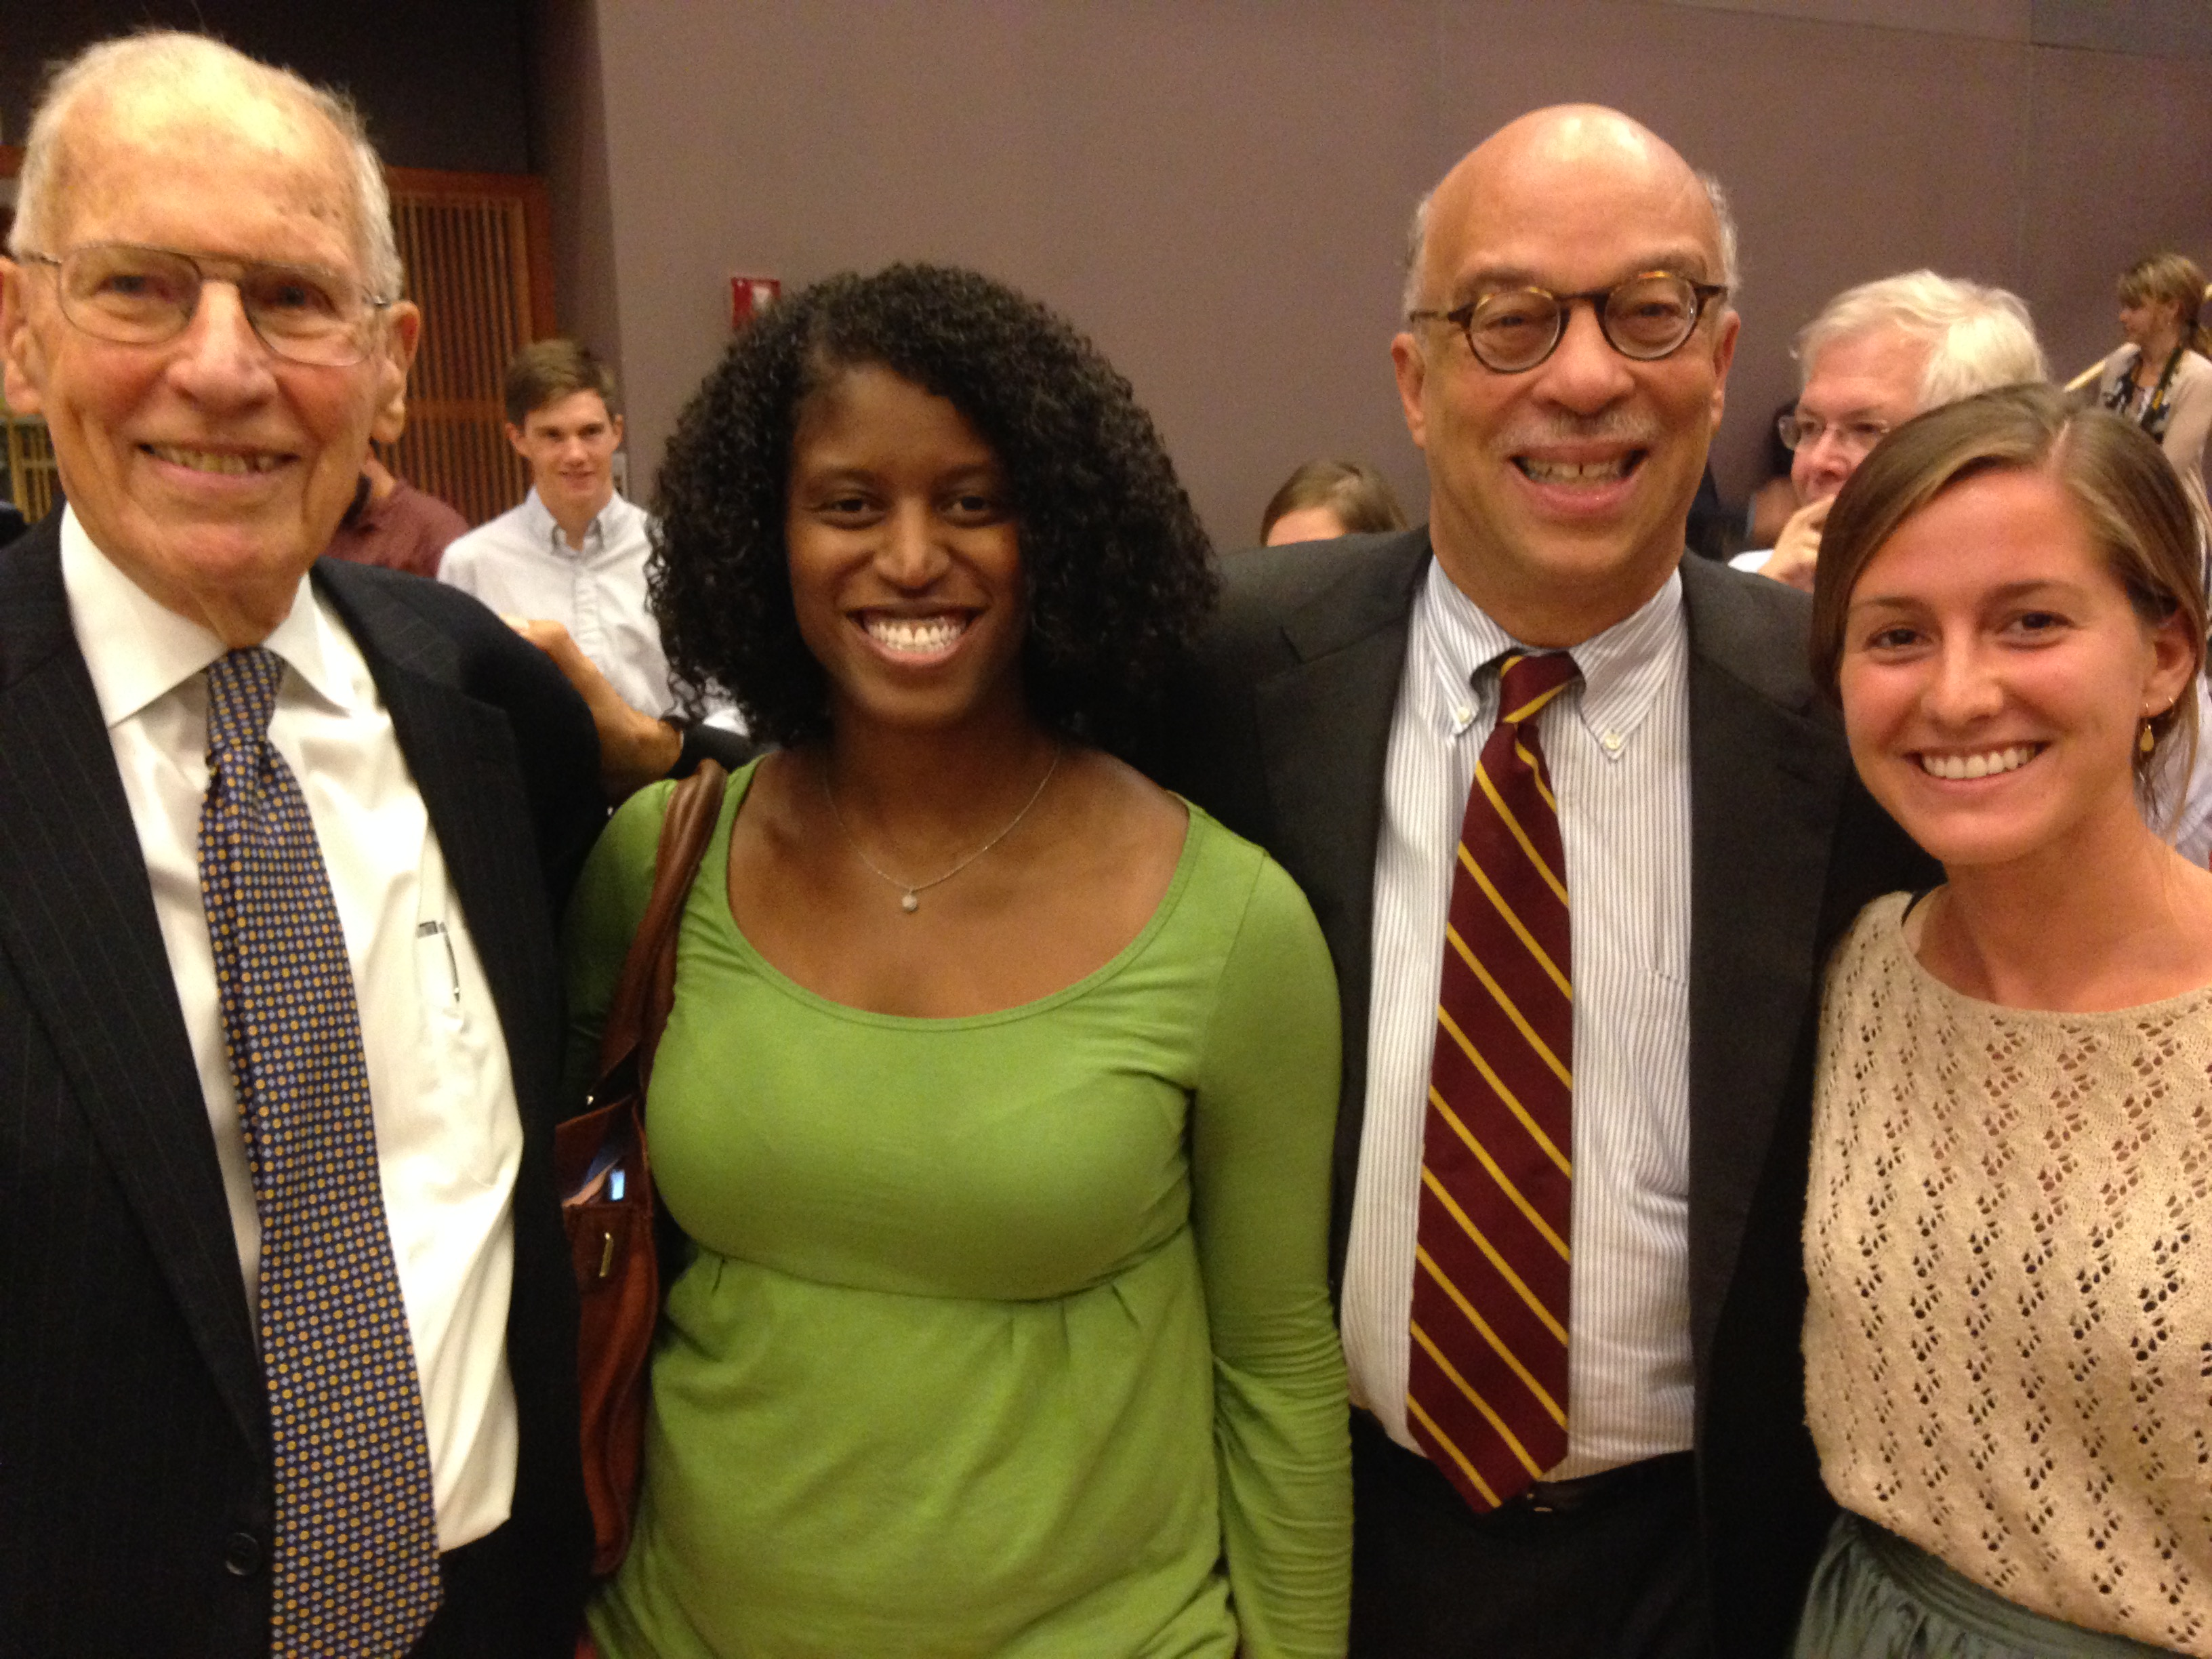 Governor William Winter with MDC's Shun Robertson, David Dodson, and Anna Ormond